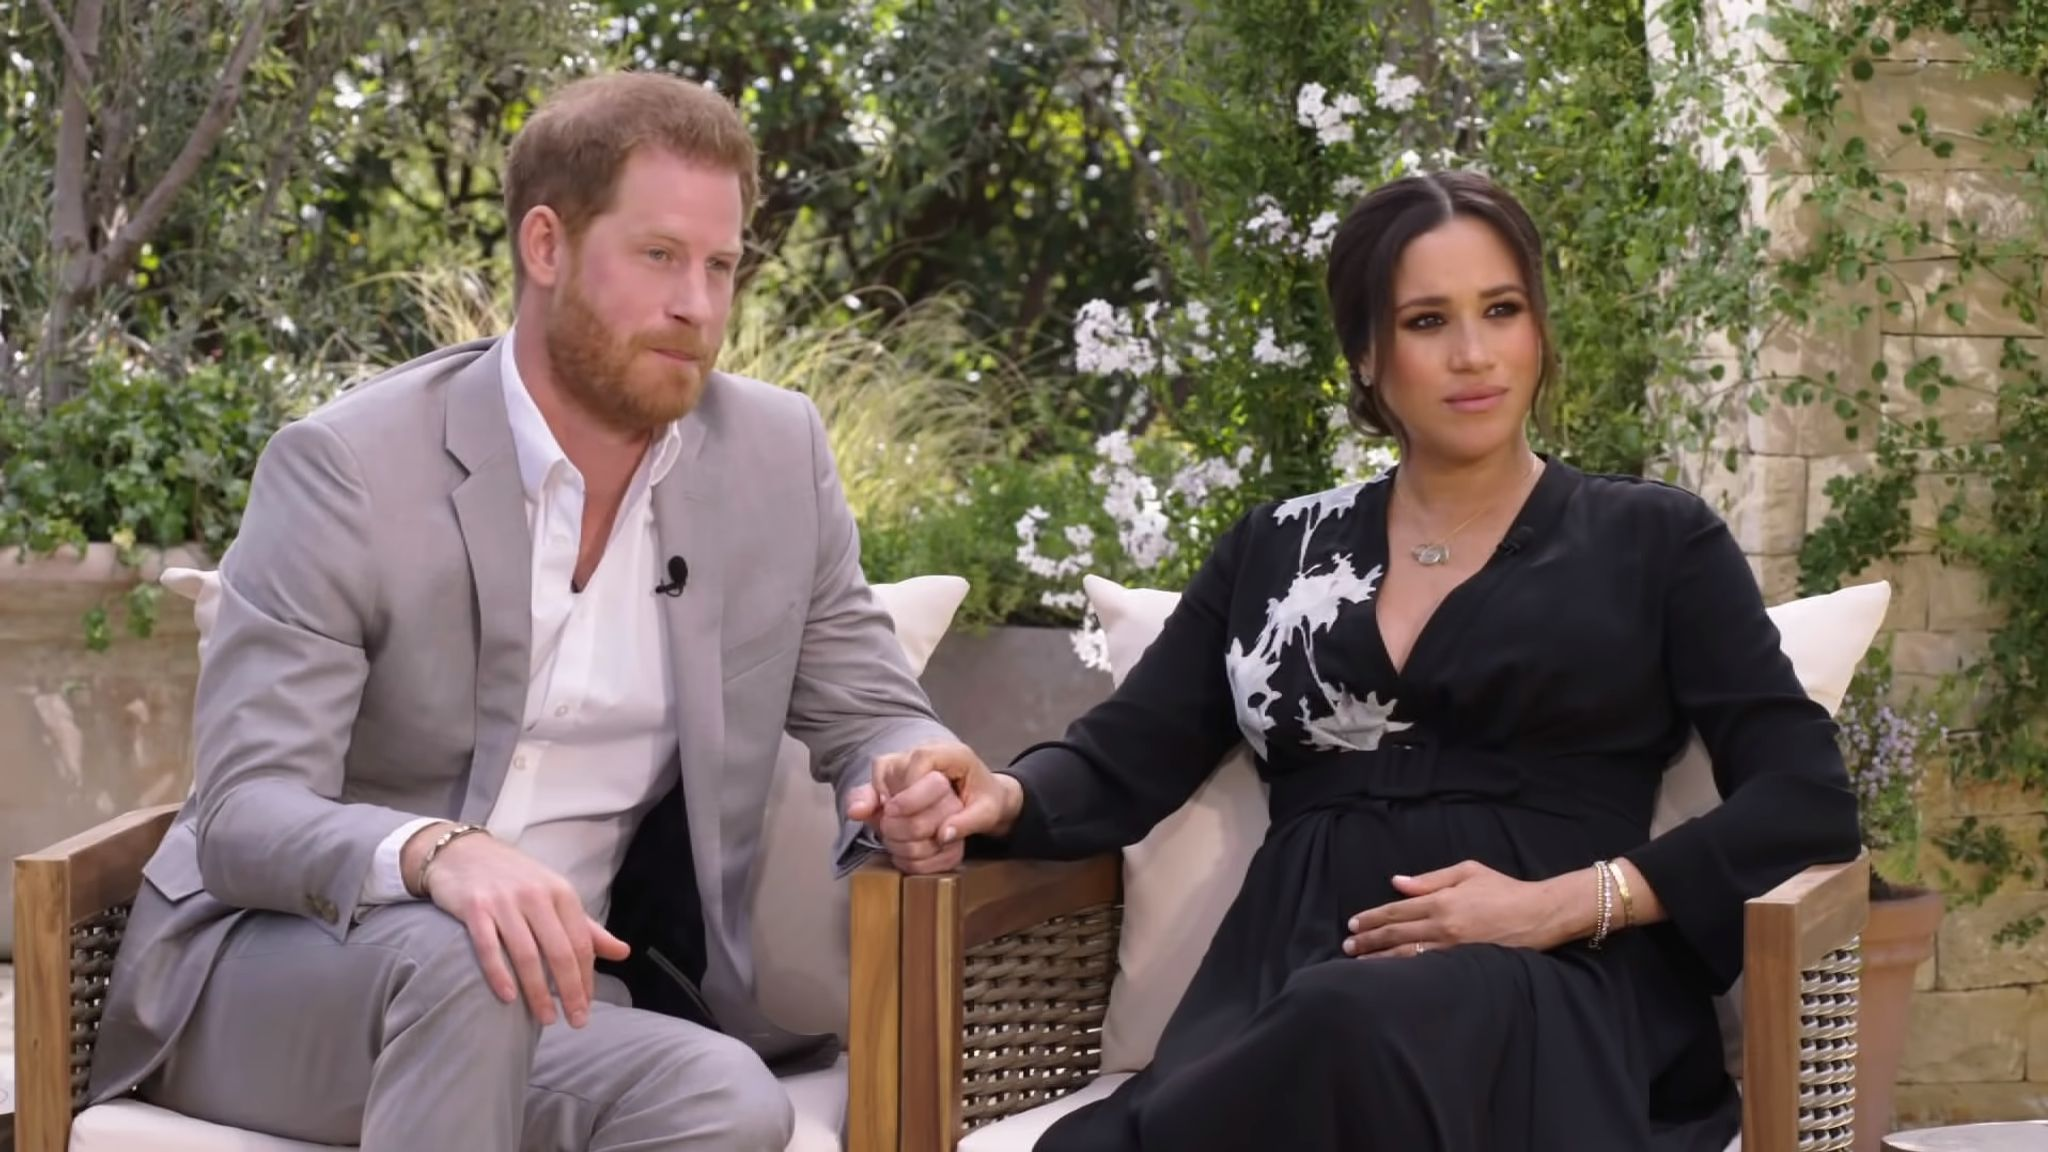 """""""meghan-markle-and-prince-harry-did-not-legally-get-married-before-royal-wedding-expert-explains-the-misunderstanding"""""""